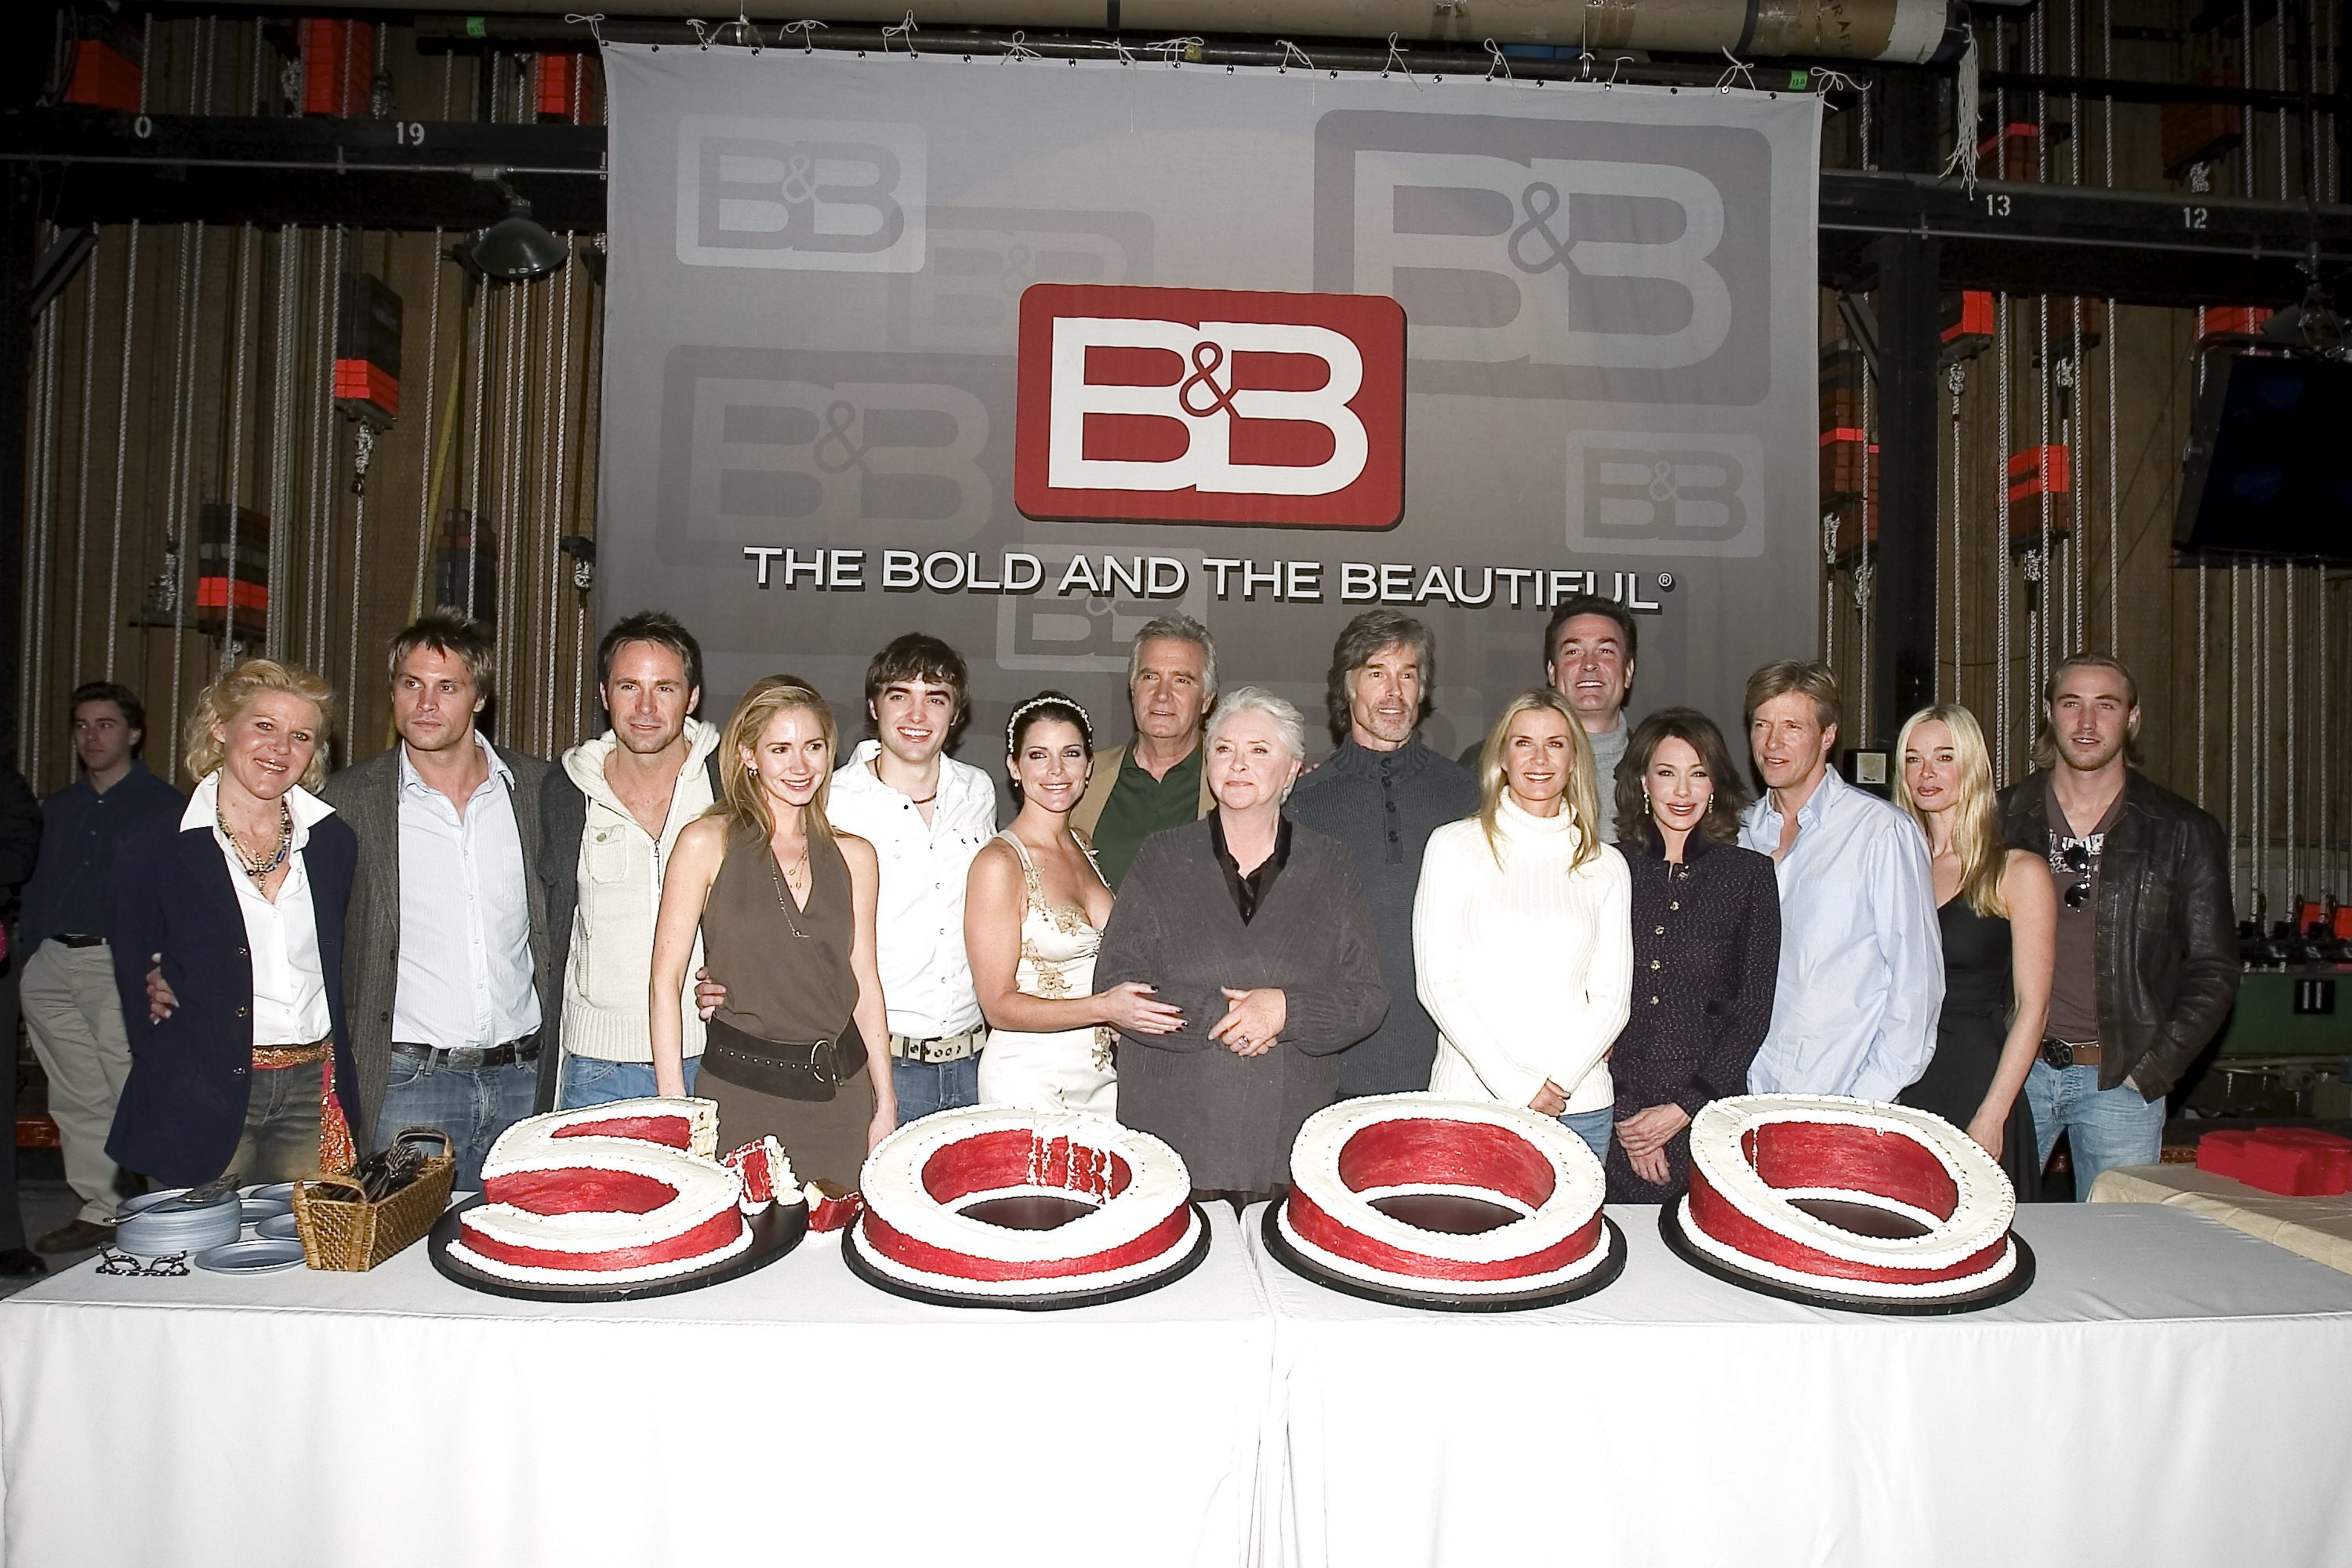 Whole lotta frosting: B&B toasts to 5,000 episodes.